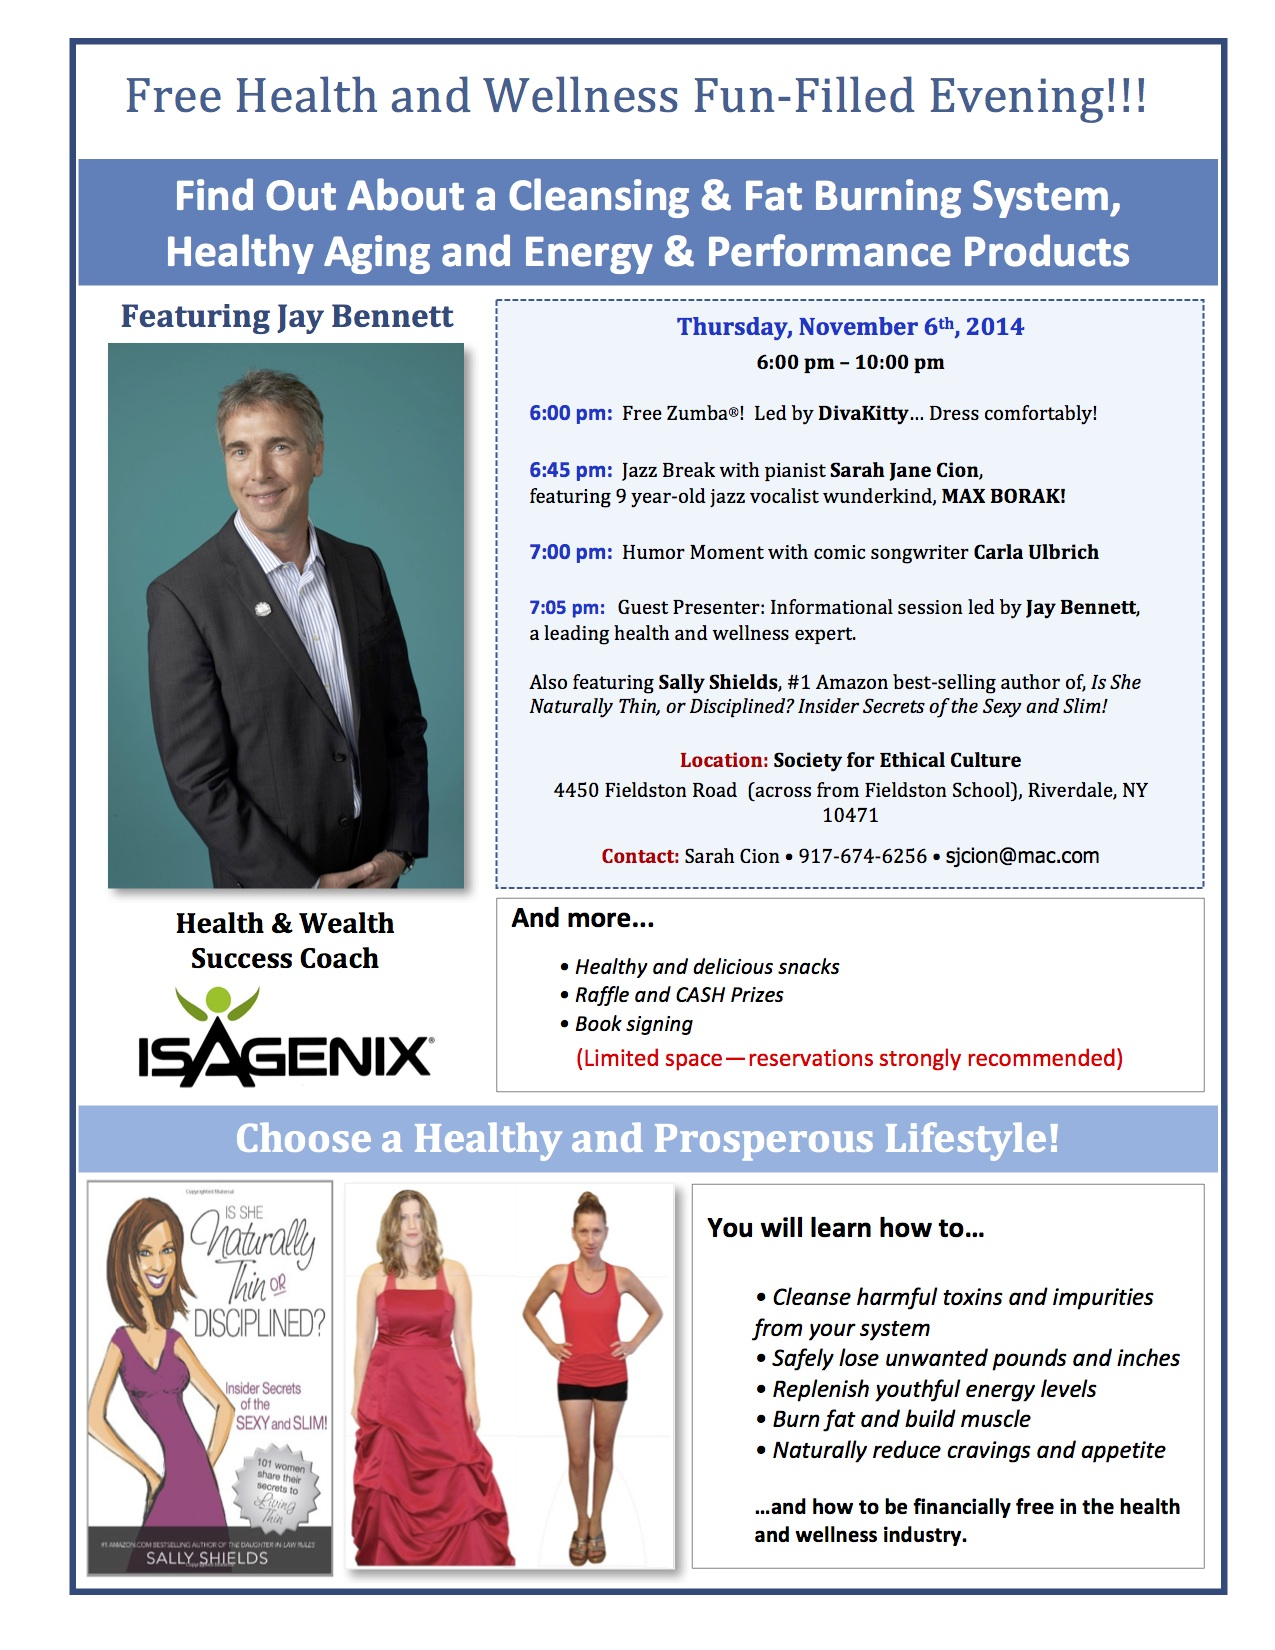 Free Event: National Health & Wellness Day, November 6